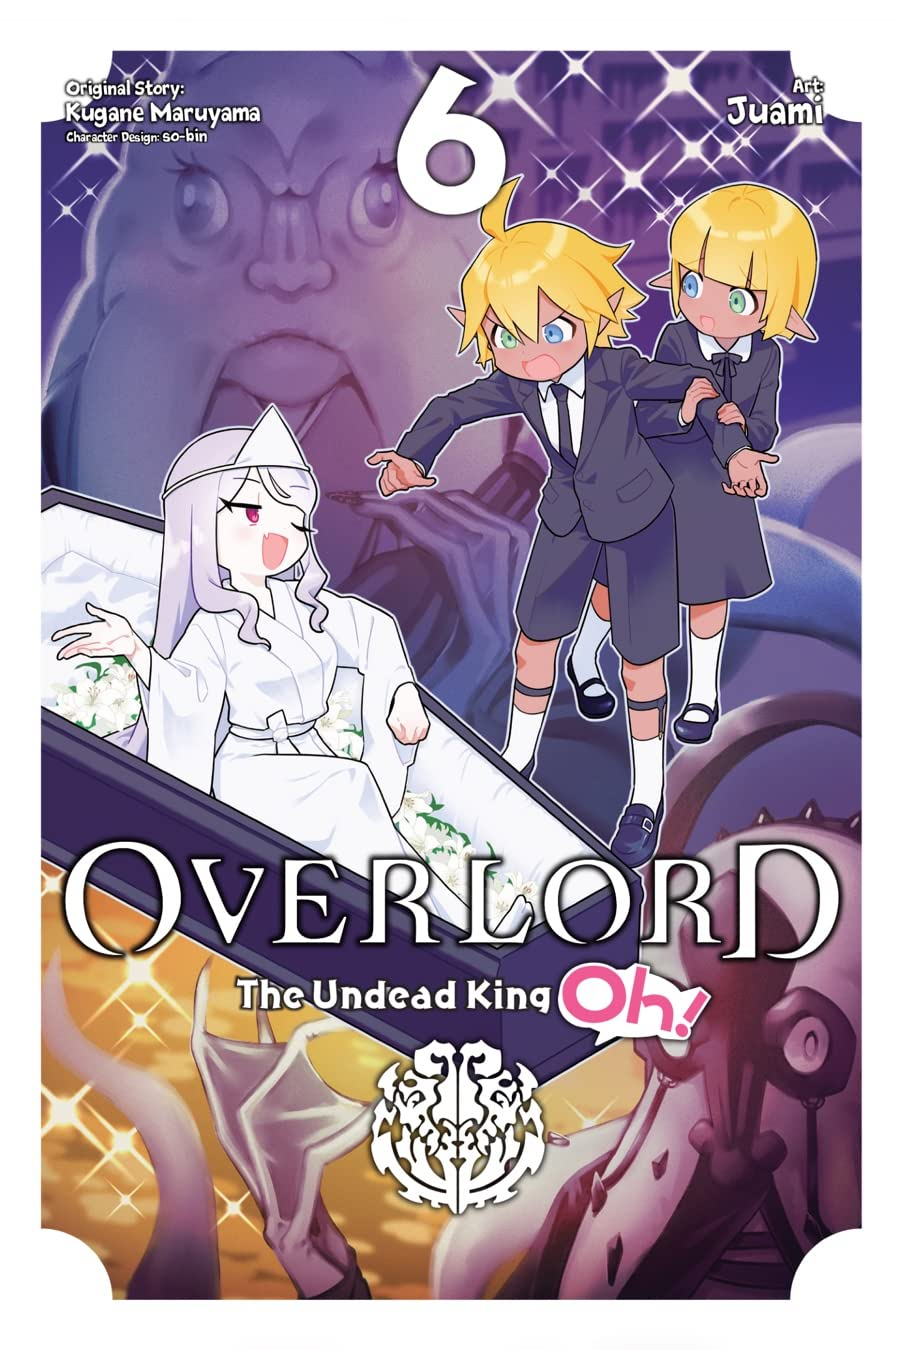 Overlord: The Undead King Oh! Vol. 6